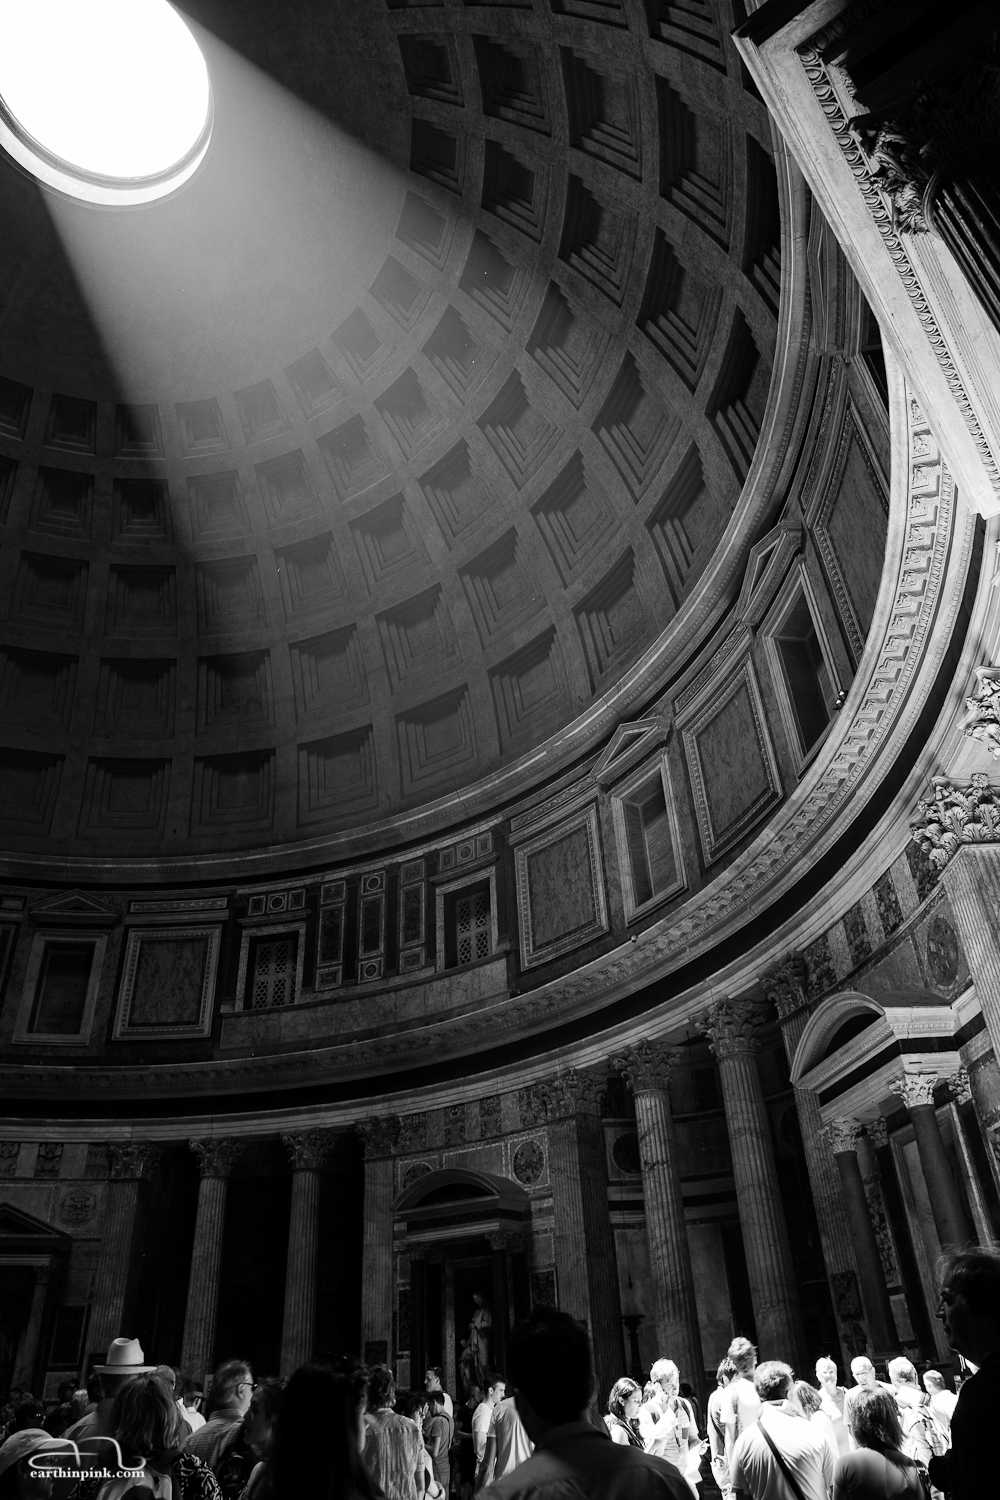 Sun shining through the roof of the Pantheon, Rome, Italy